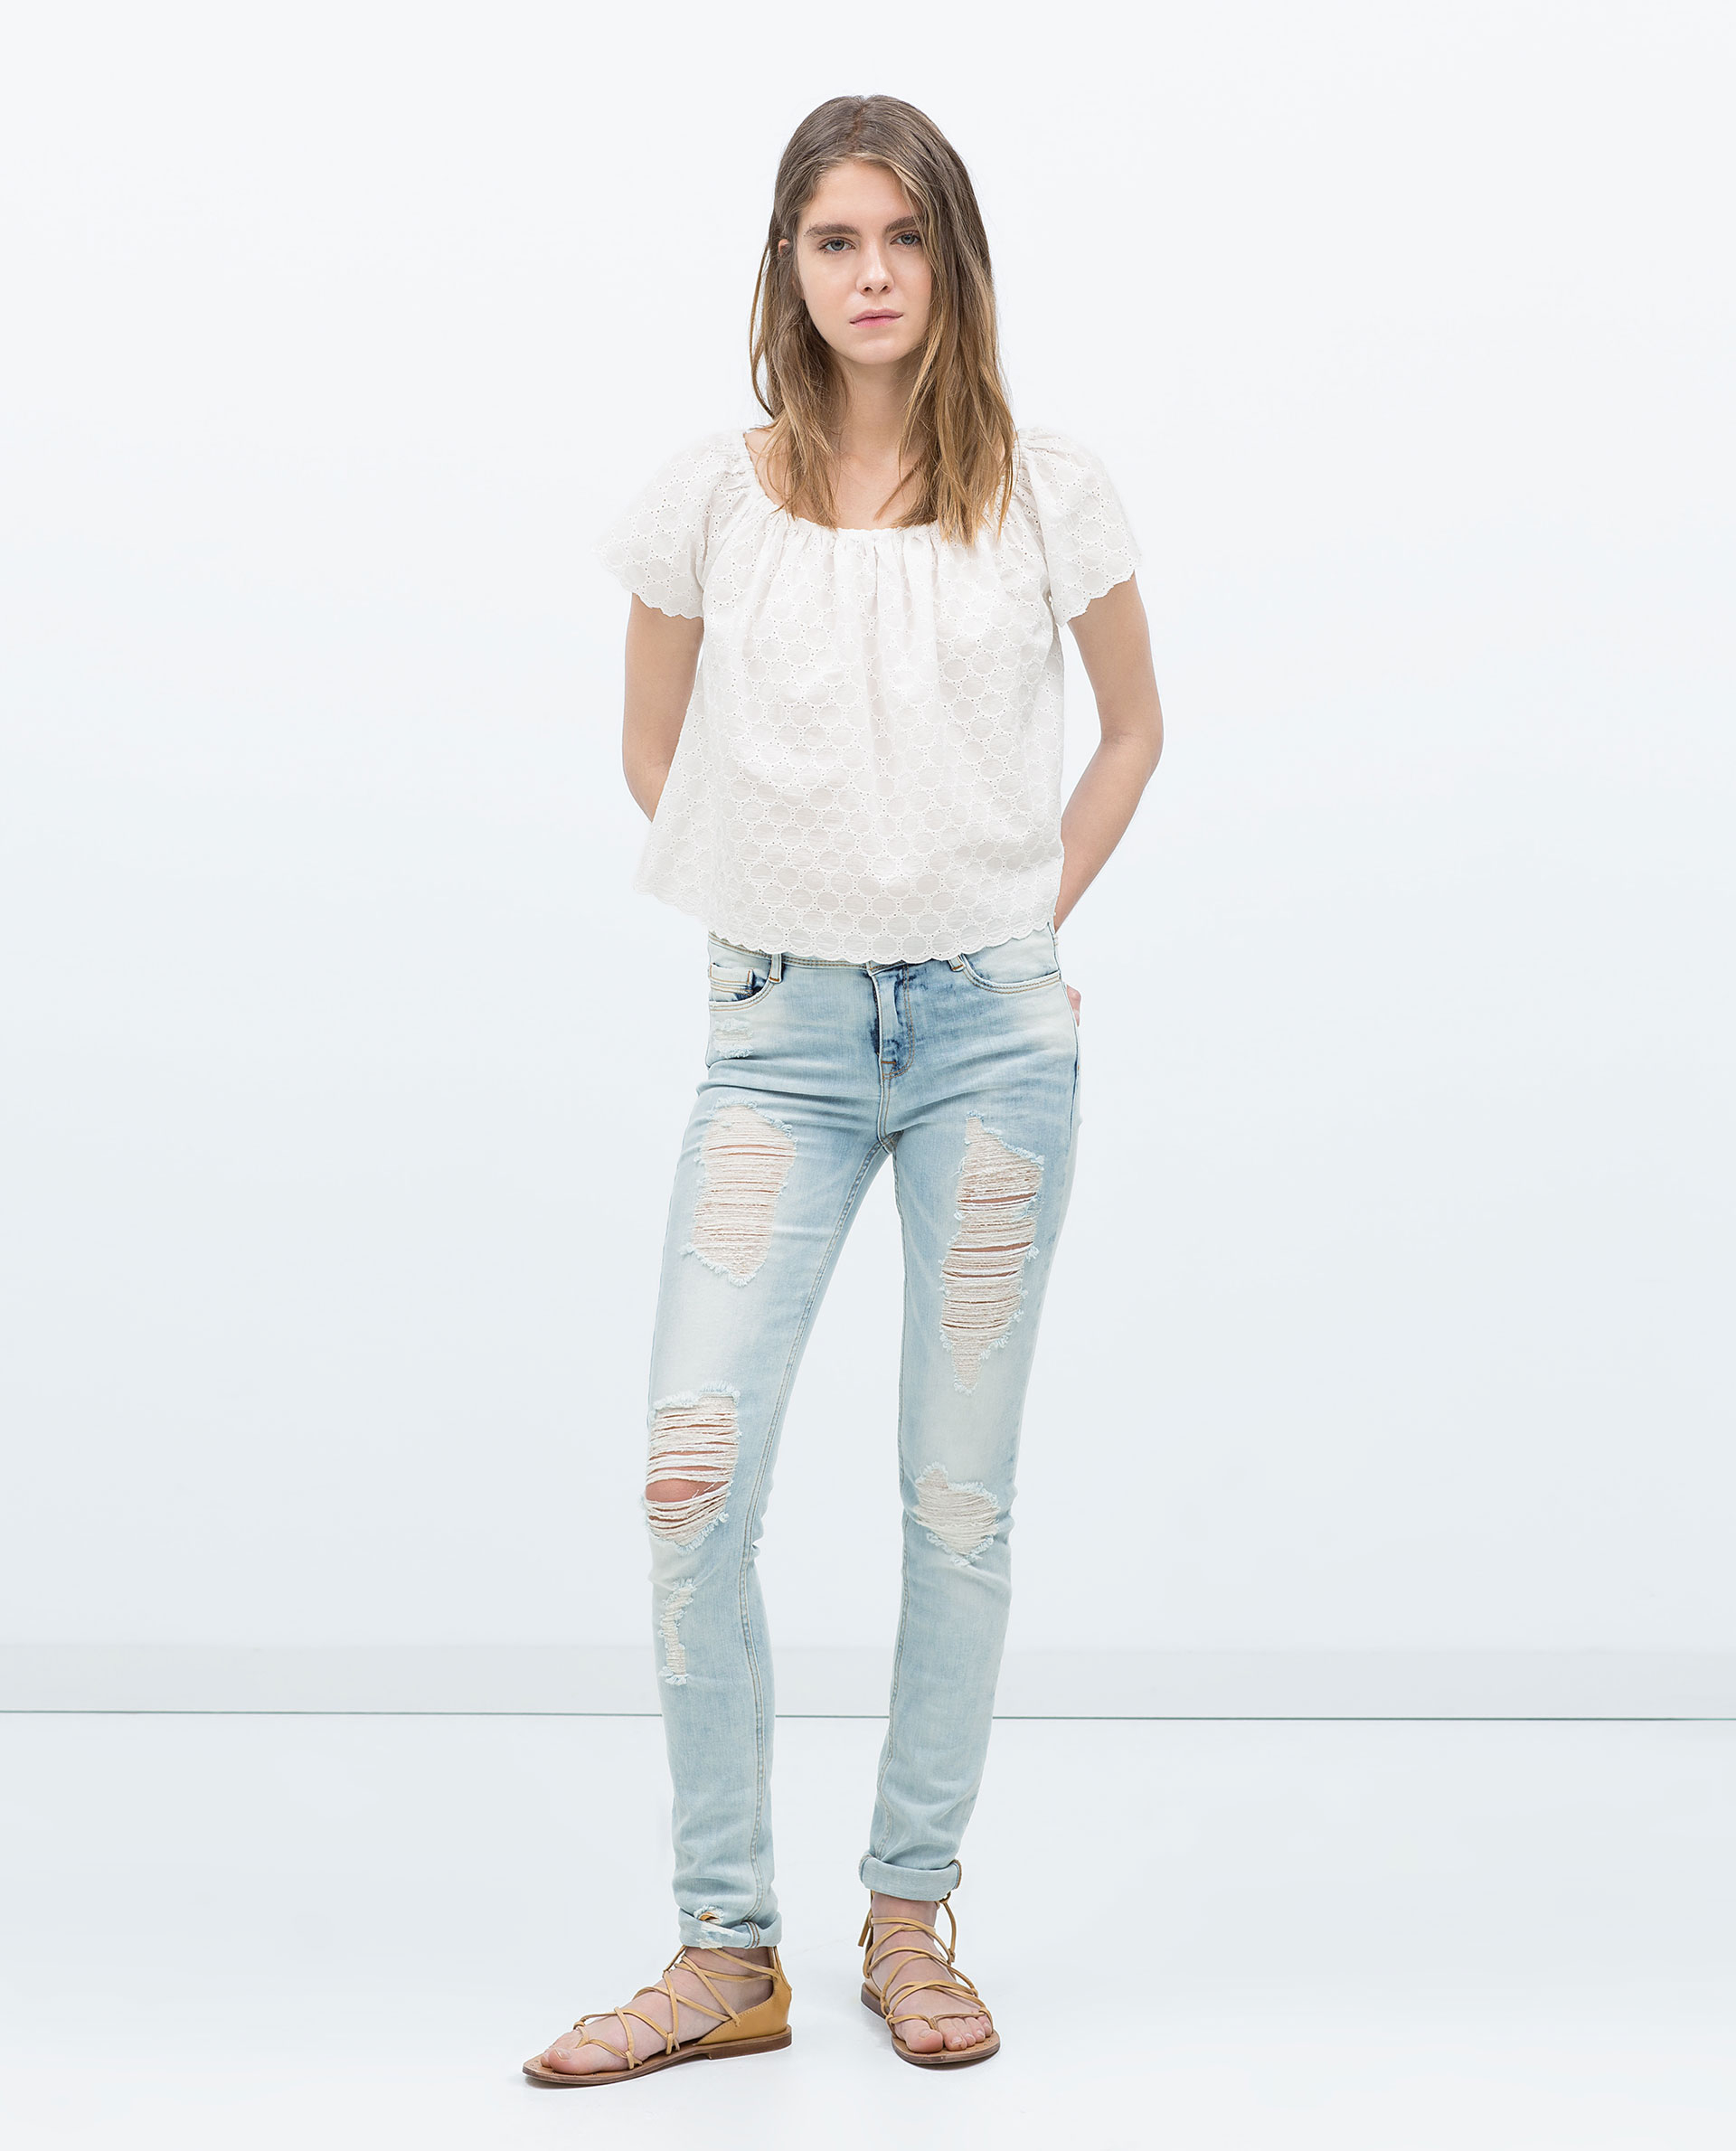 Cool Zara Carries Clothing For Men, Women And Children, As Of March 2015 Types Of Clothing Vary By Store But Can Include Tshirts, Pants, Shorts, Sweatshirts And Polo Shirts Shoes, Sandals And Accessories, Such As Bags, Are Also Available